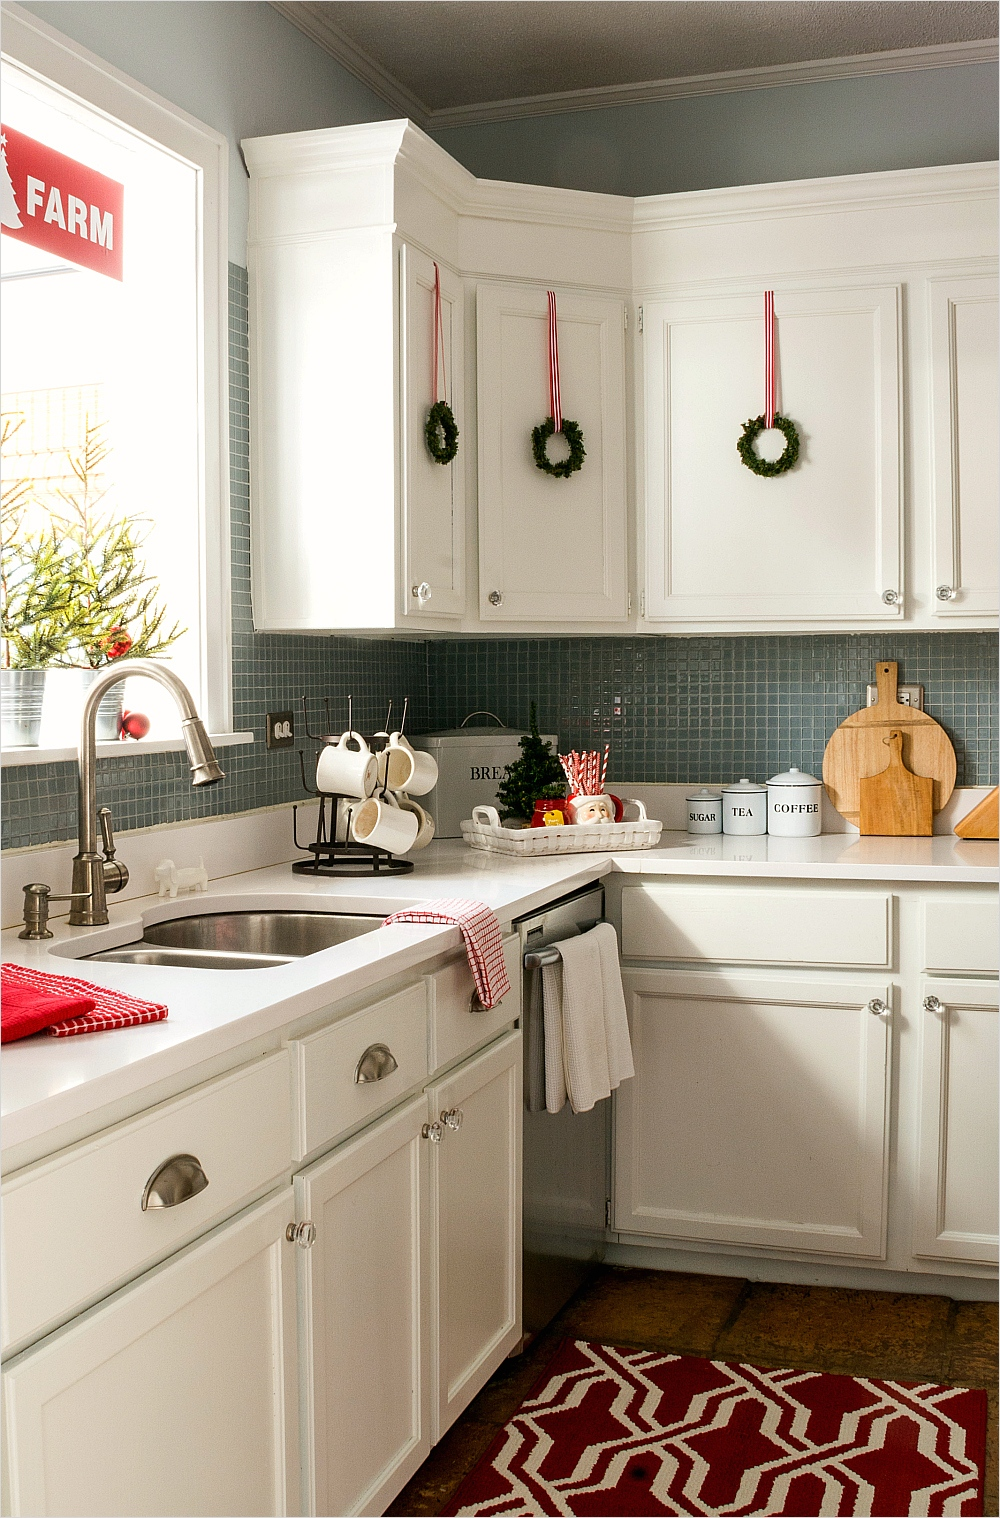 42 Awesome Kitchen Christmas Decorating Ideas 31 Christmas In the Kitchen 5